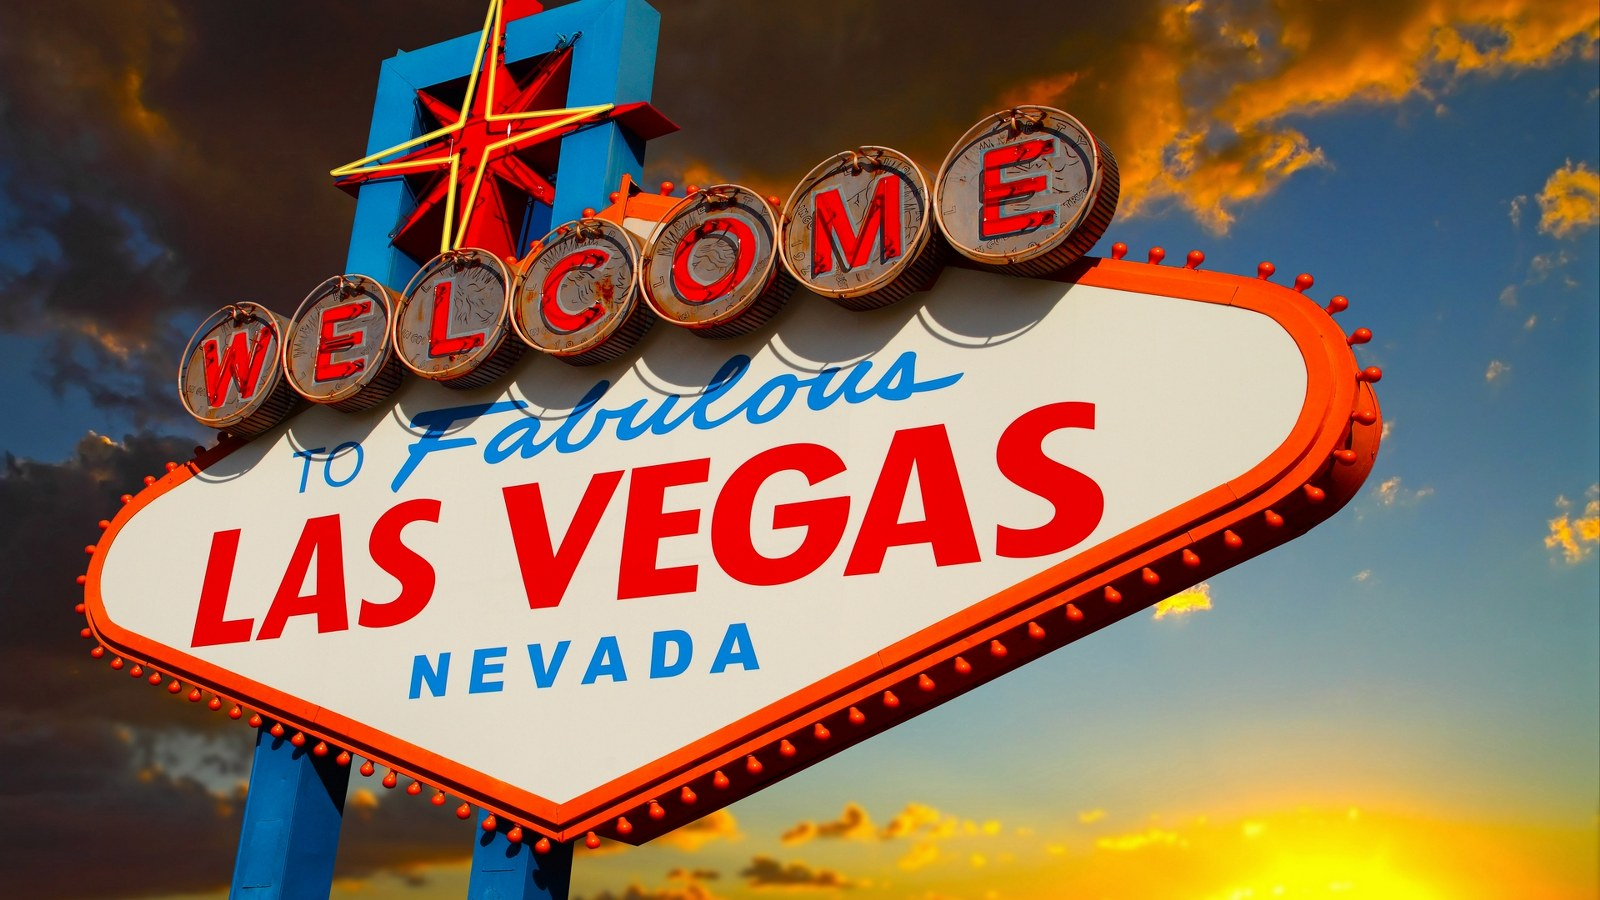 Las Vegas Sign Wallpaper